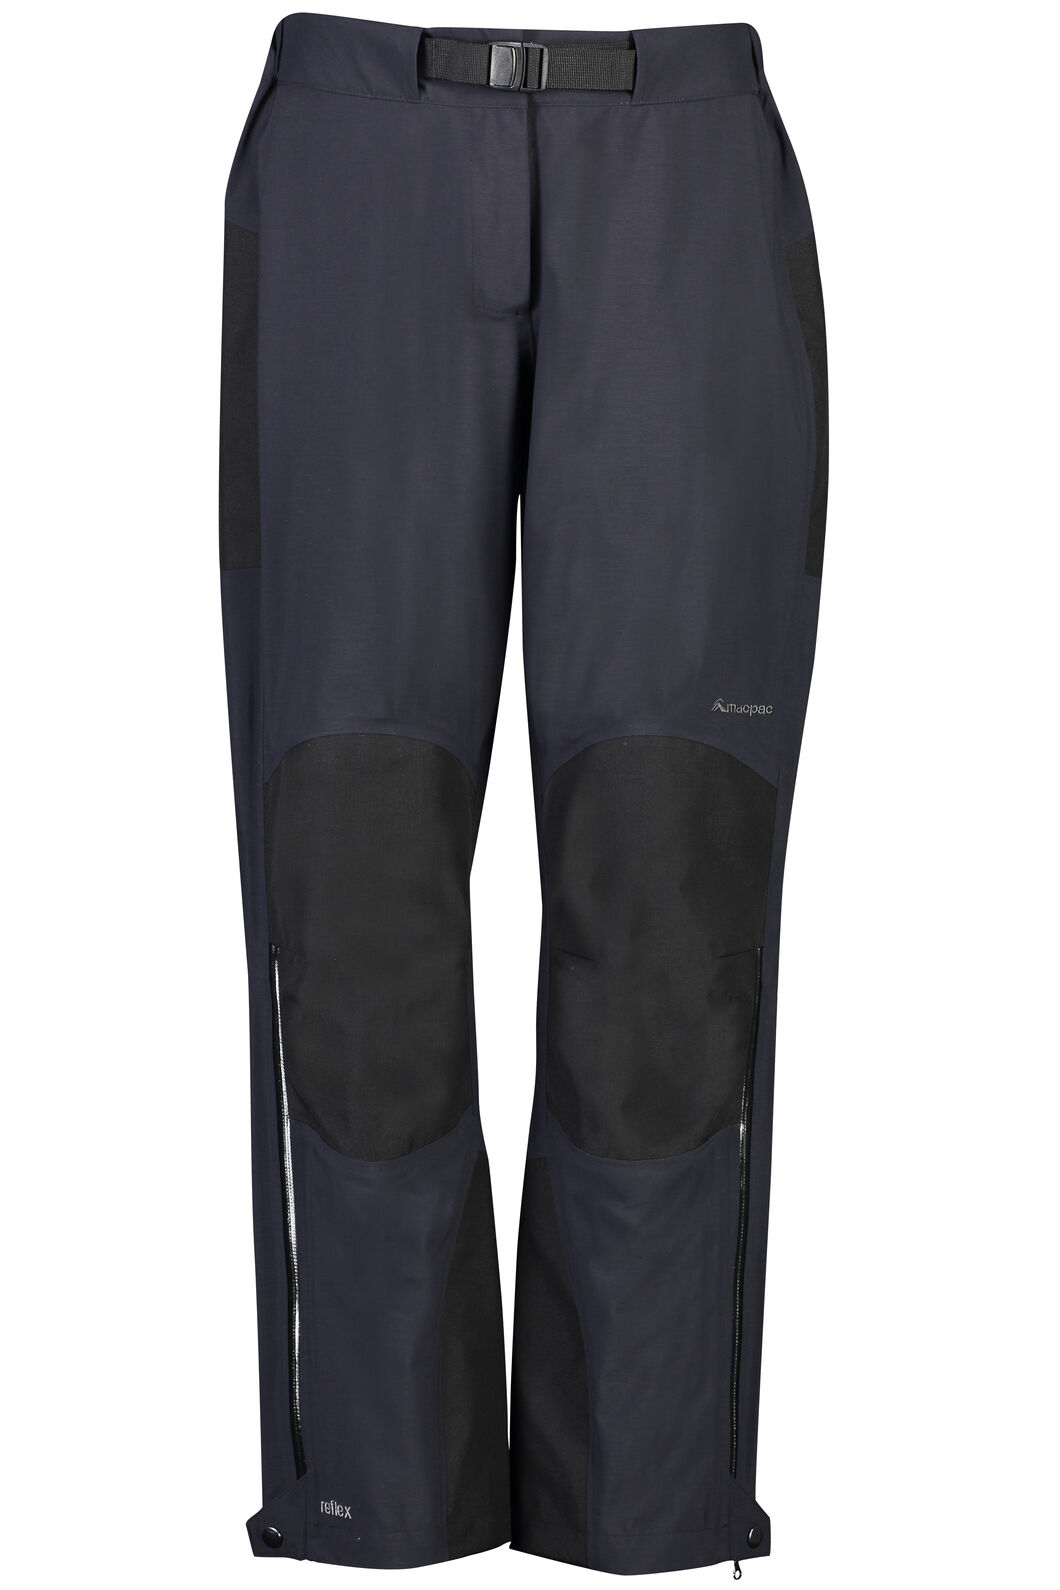 Macpac Gauge Rain Pants - Women's, Black, hi-res